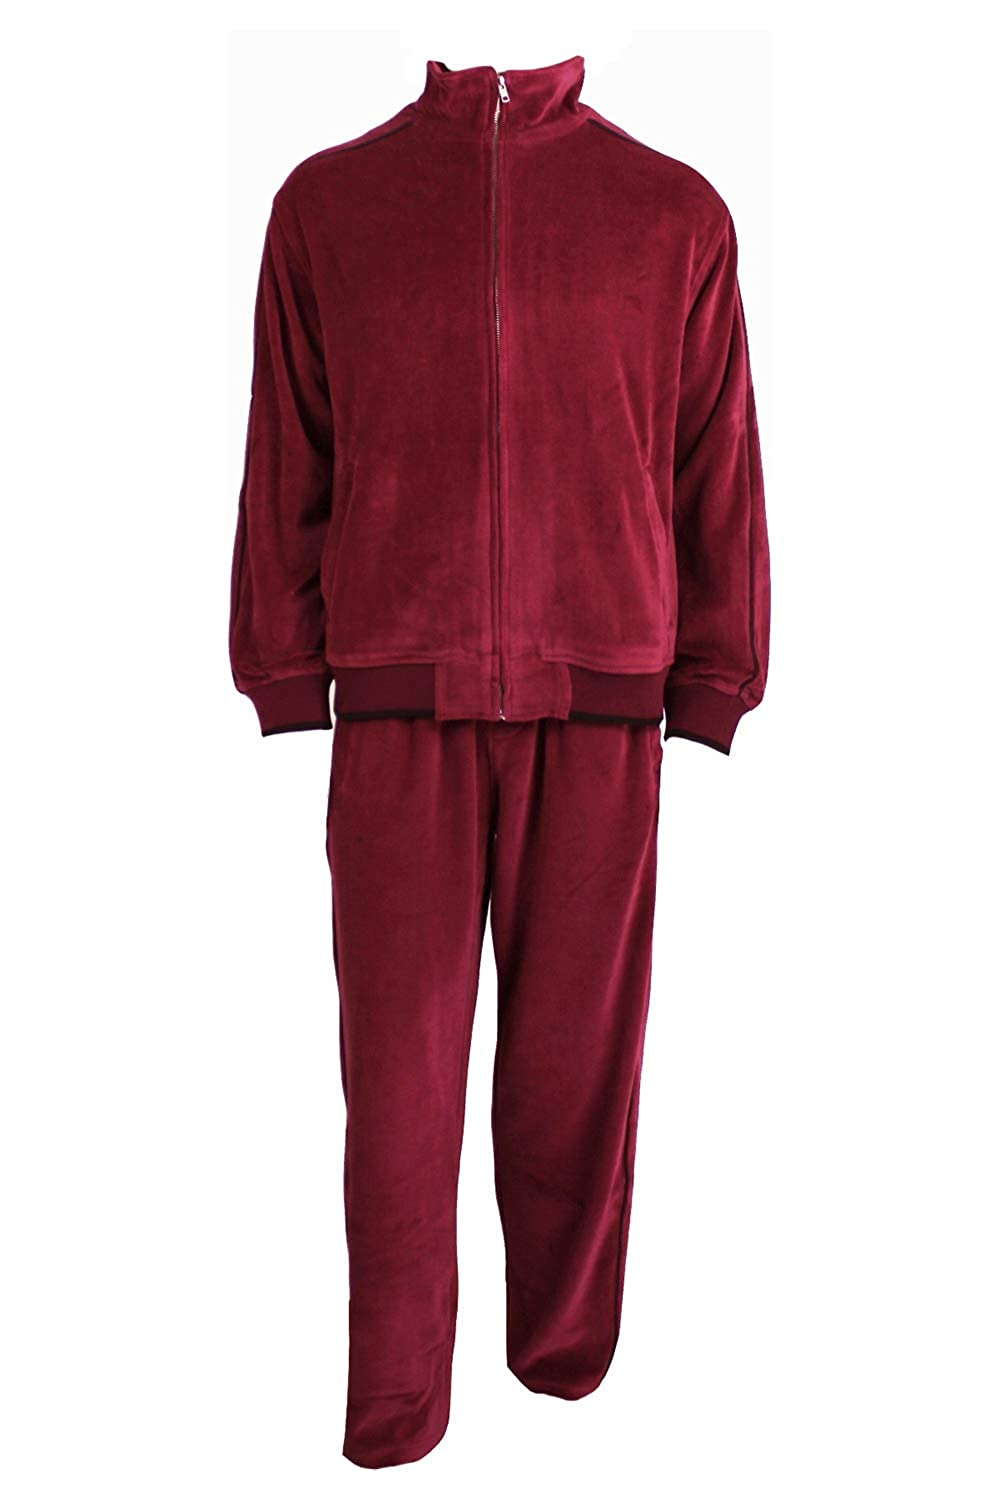 XXLarge Sweatsedo Burgundy Mens Velour Tracksuit